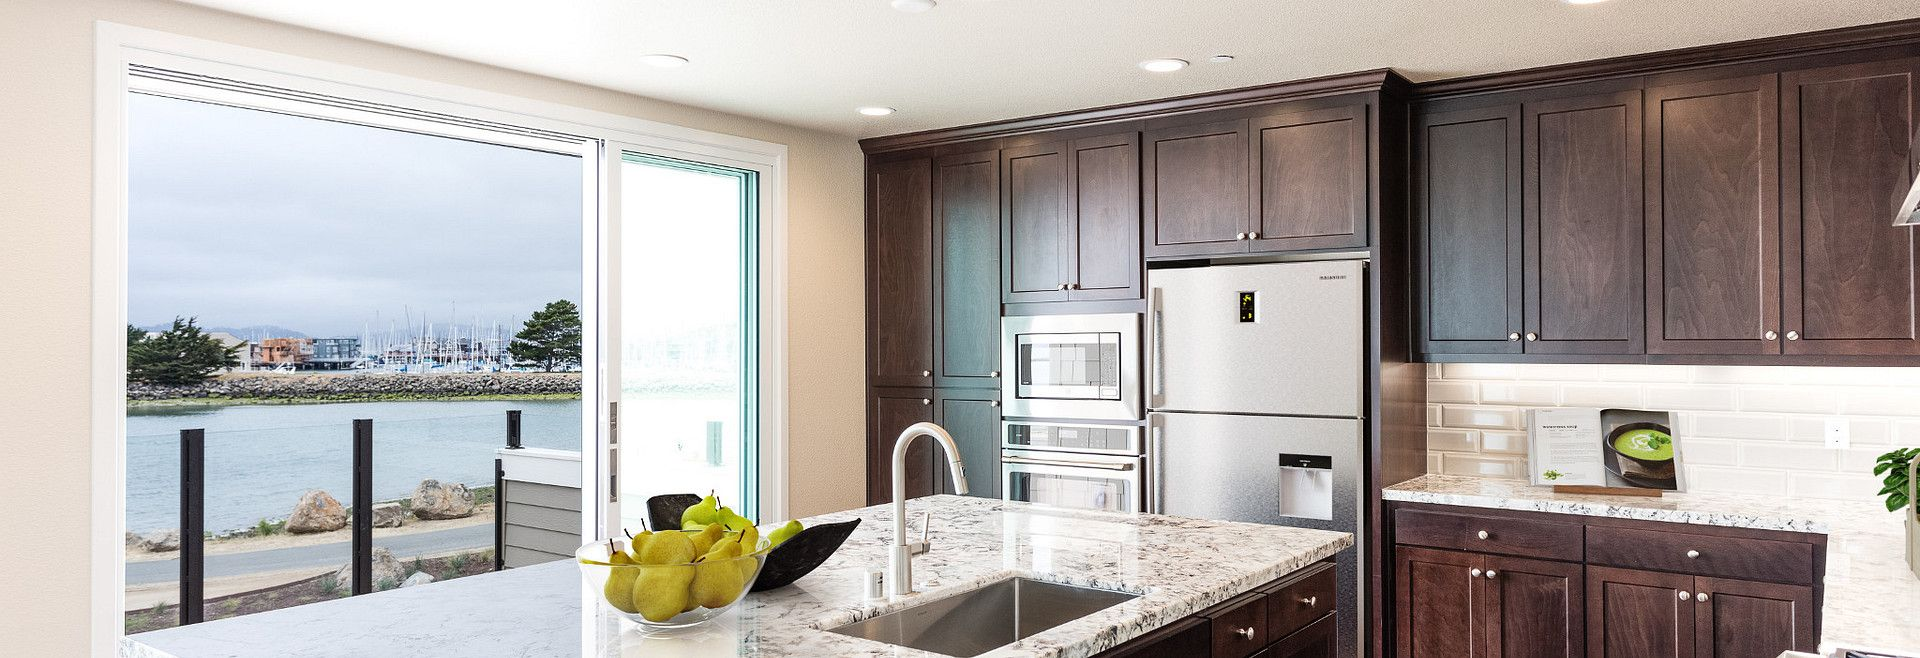 Kitchen featured in the Plan 2B By Shea Homes in Oakland-Alameda, CA